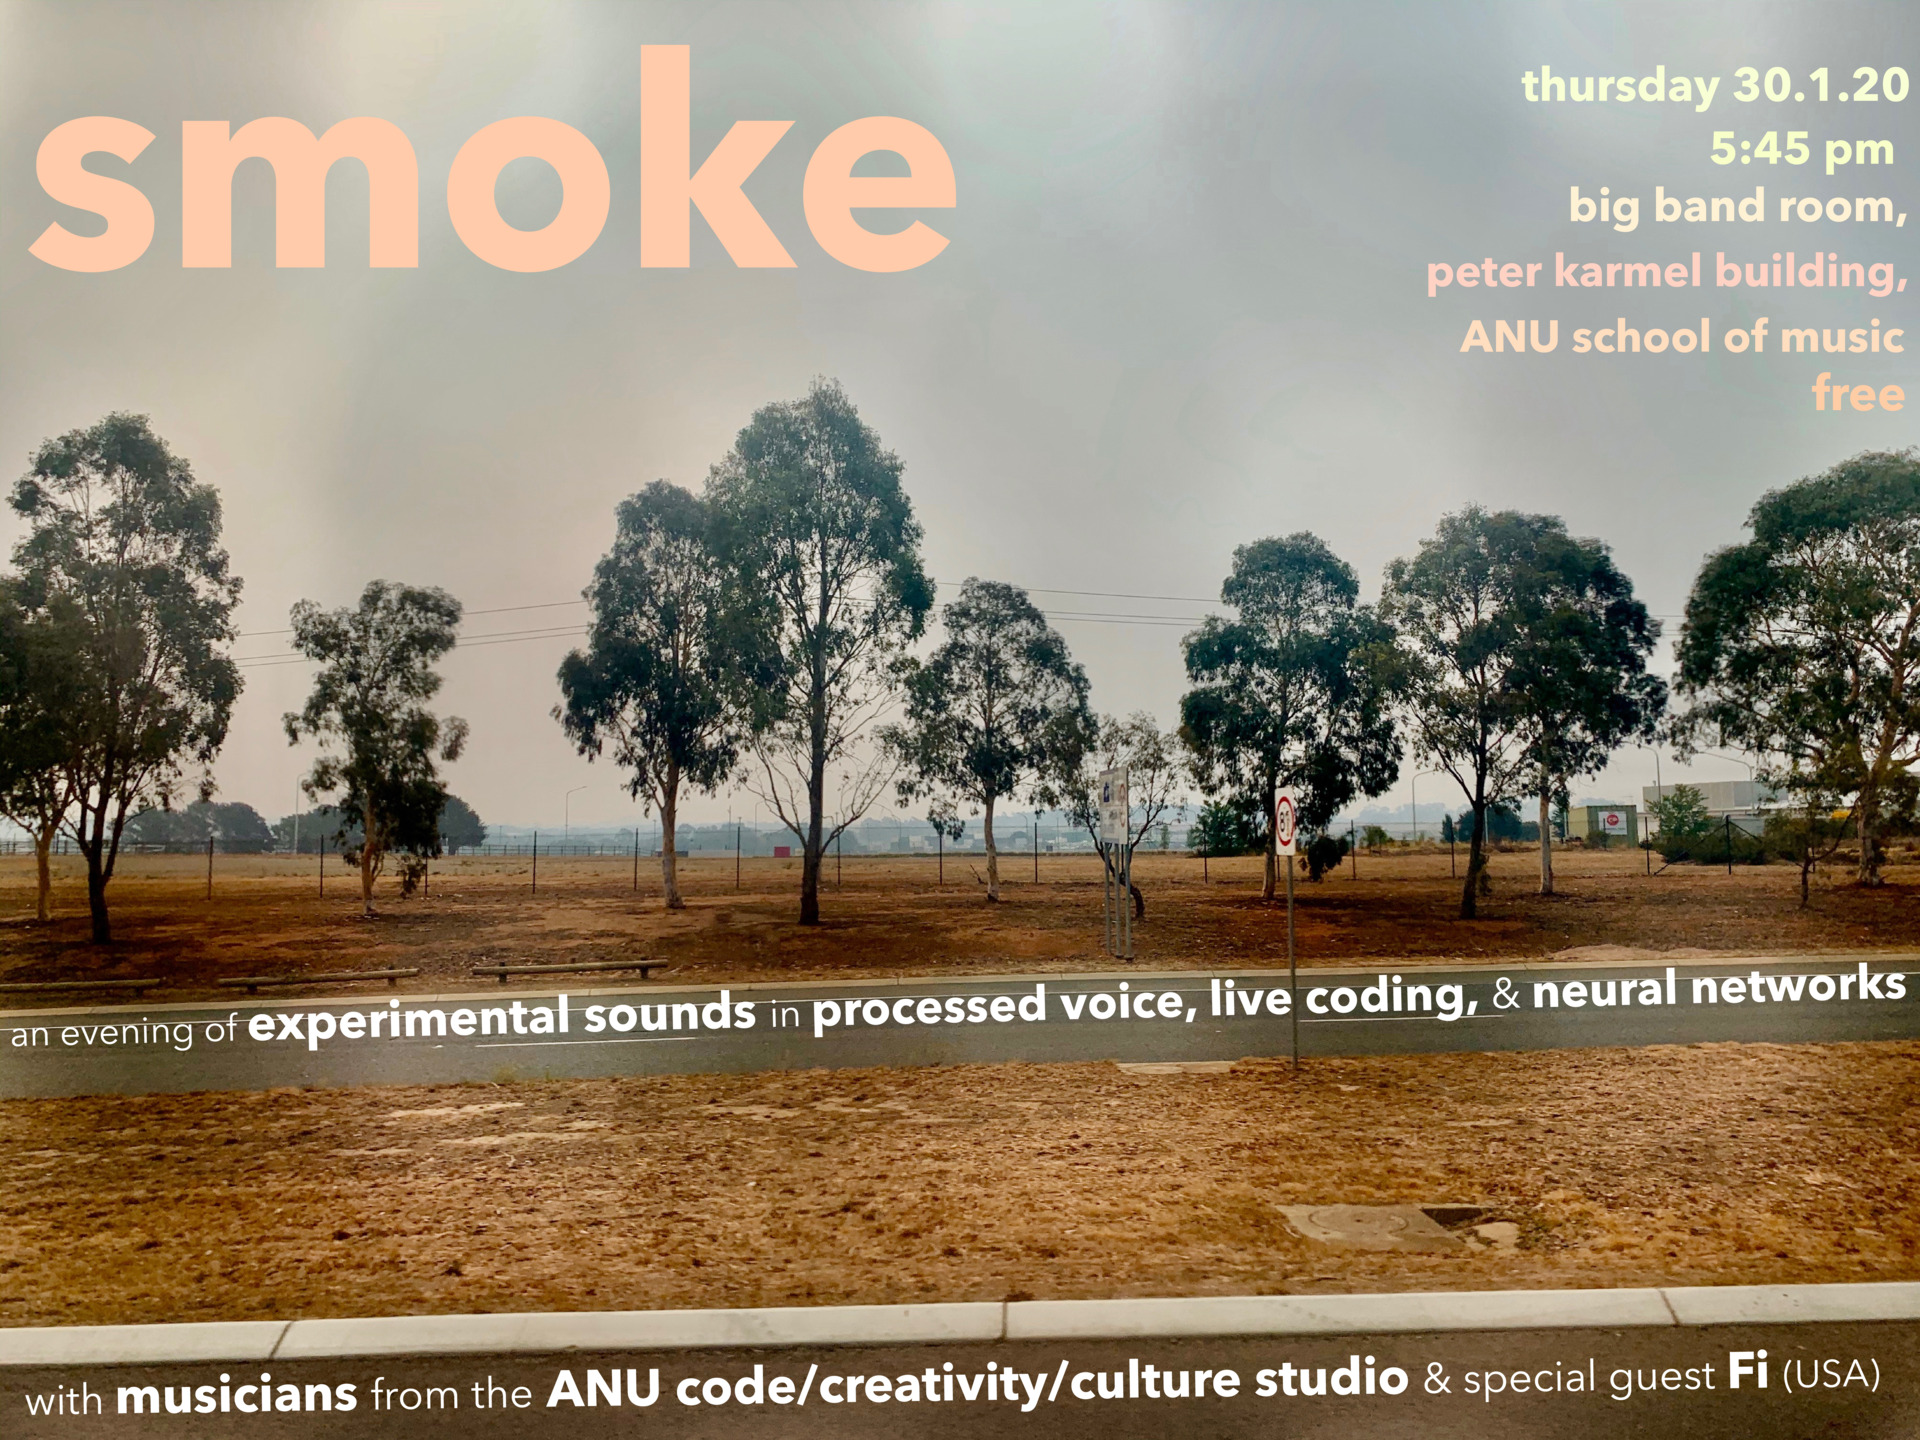 ad for Smoke gig - see FB event for details